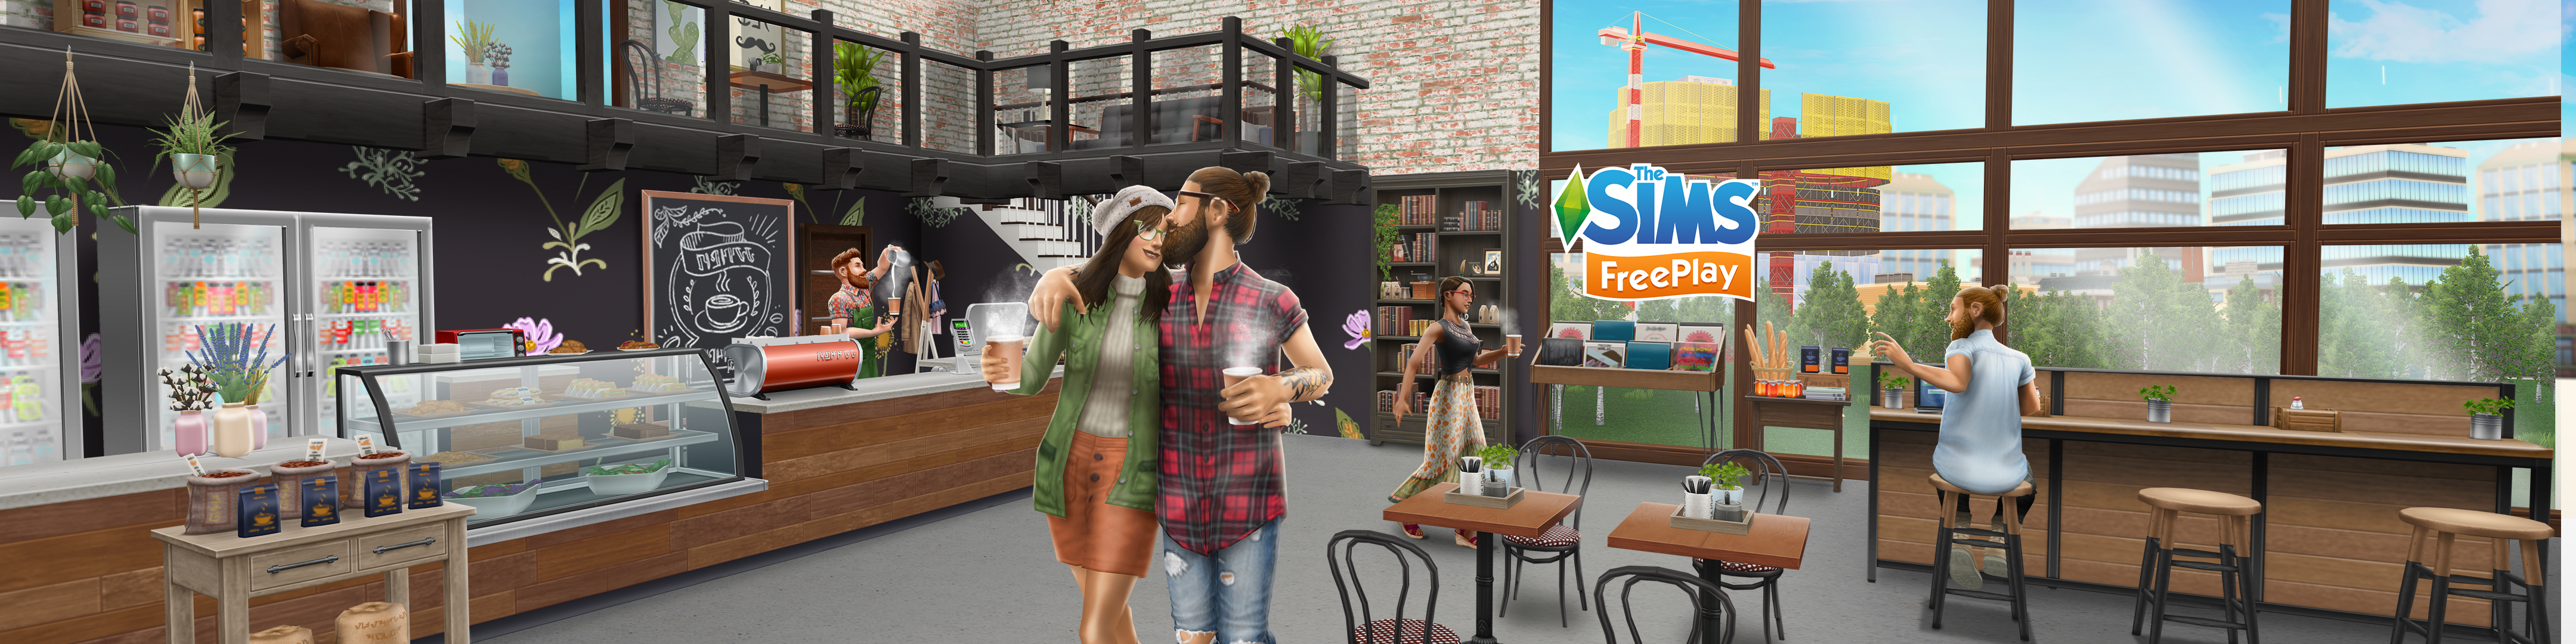 The Sims Freeplay Cafe Culture update!